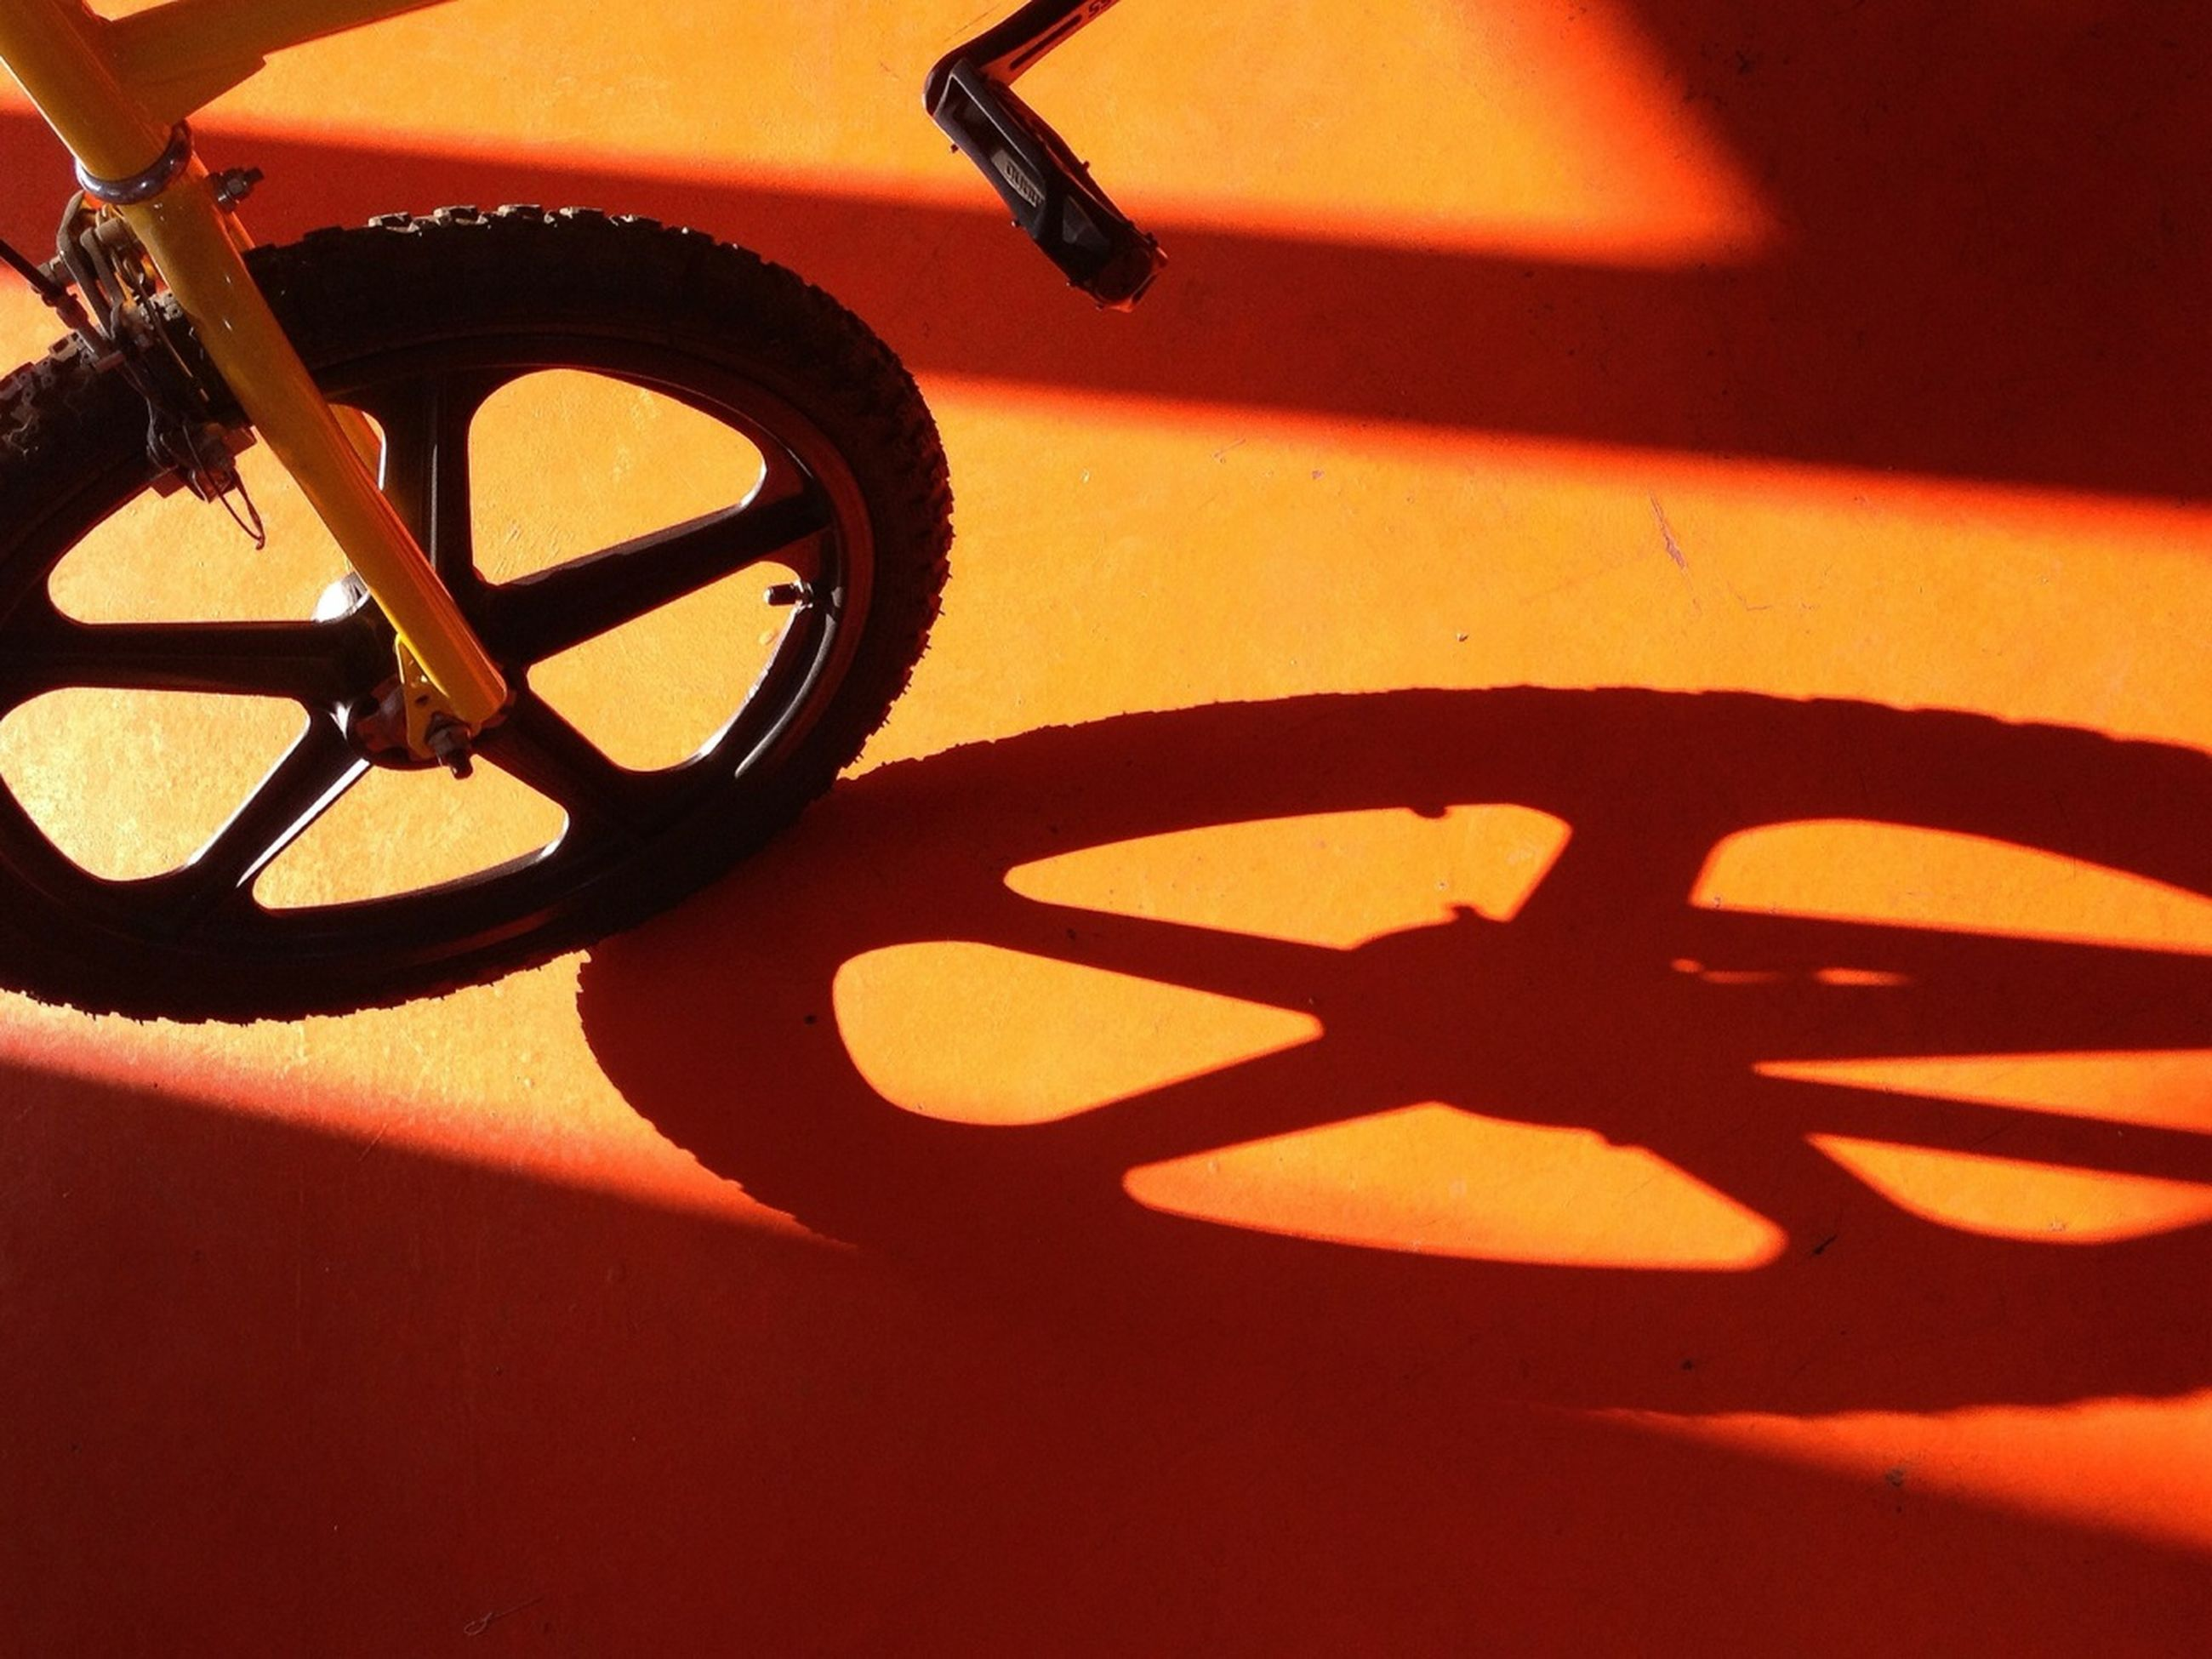 transportation, bicycle, mode of transport, orange color, close-up, land vehicle, indoors, wheel, shadow, sunset, no people, stationary, high angle view, metal, sunlight, parking, wall - building feature, still life, part of